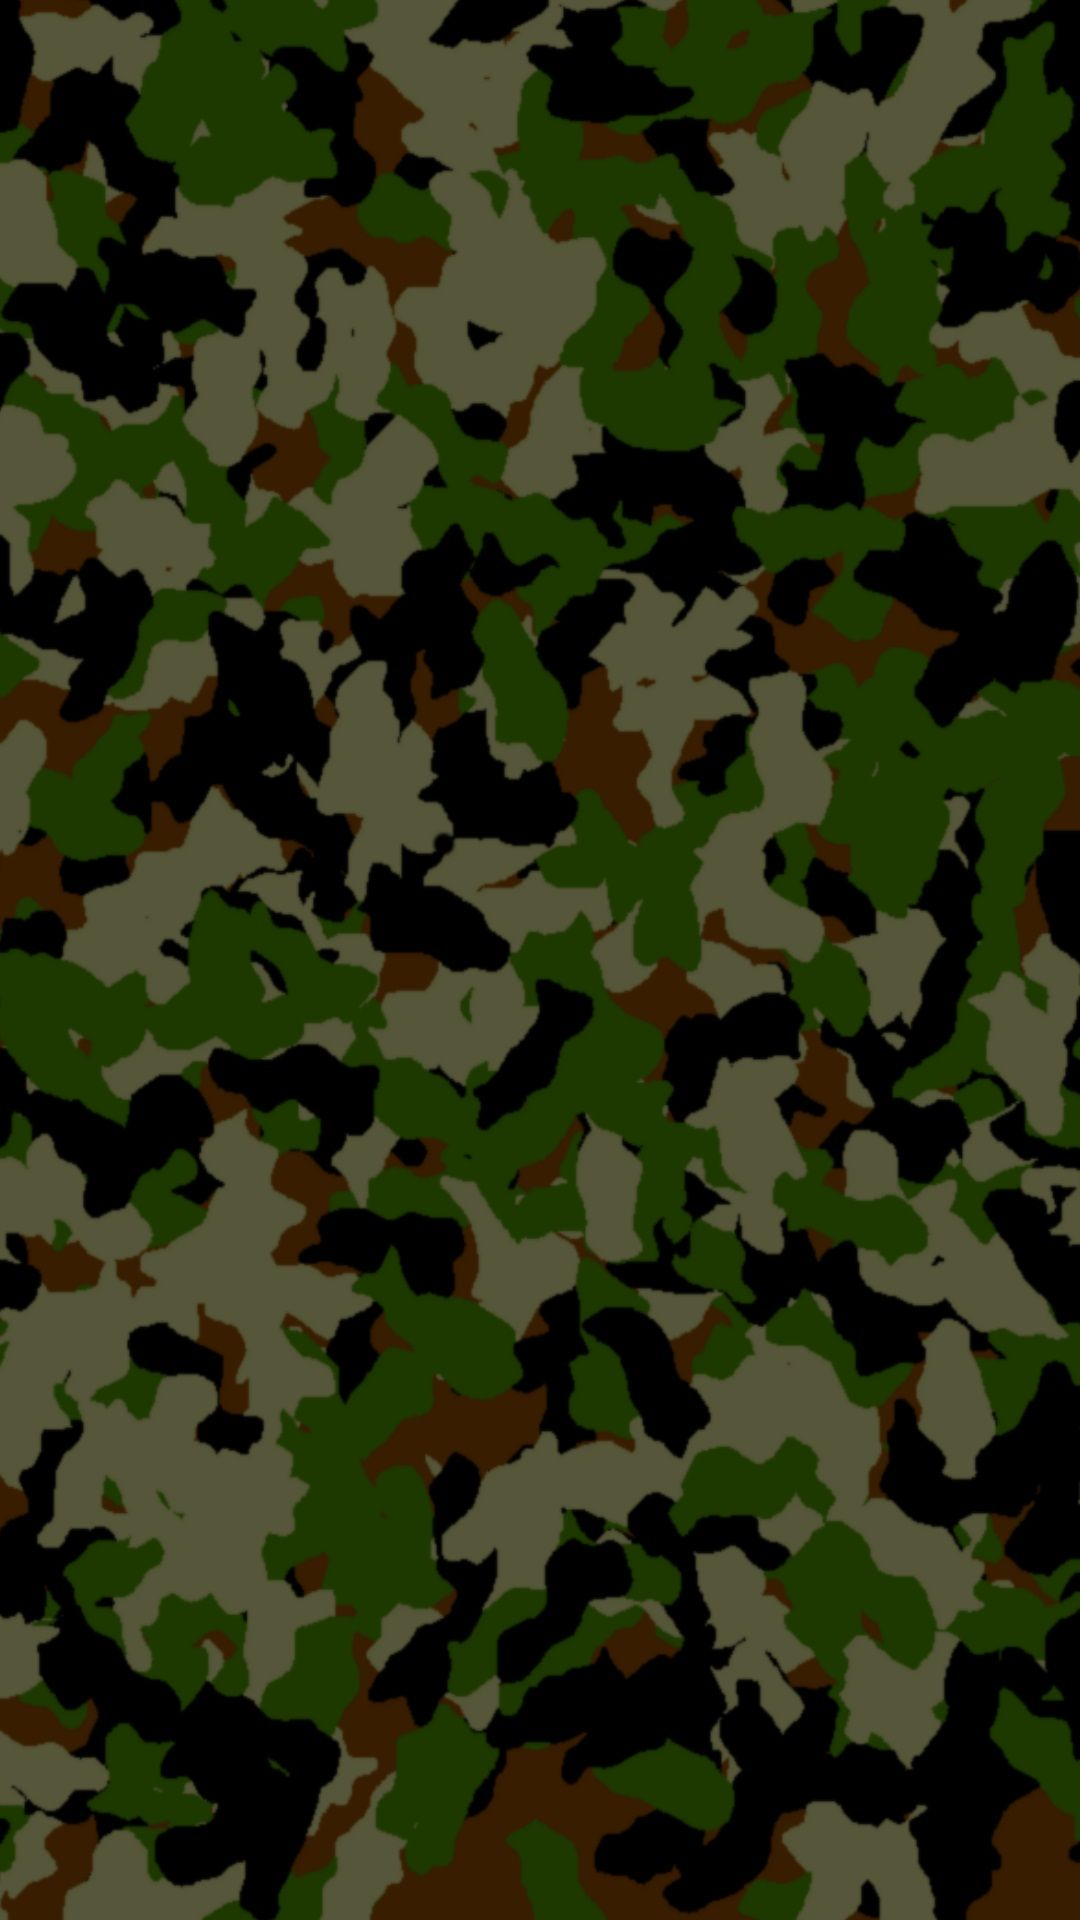 Camouflage wallpaper for iphone or android tags camo hunting camouflage wallpaper for iphone or android tags camo hunting army backgrounds voltagebd Images